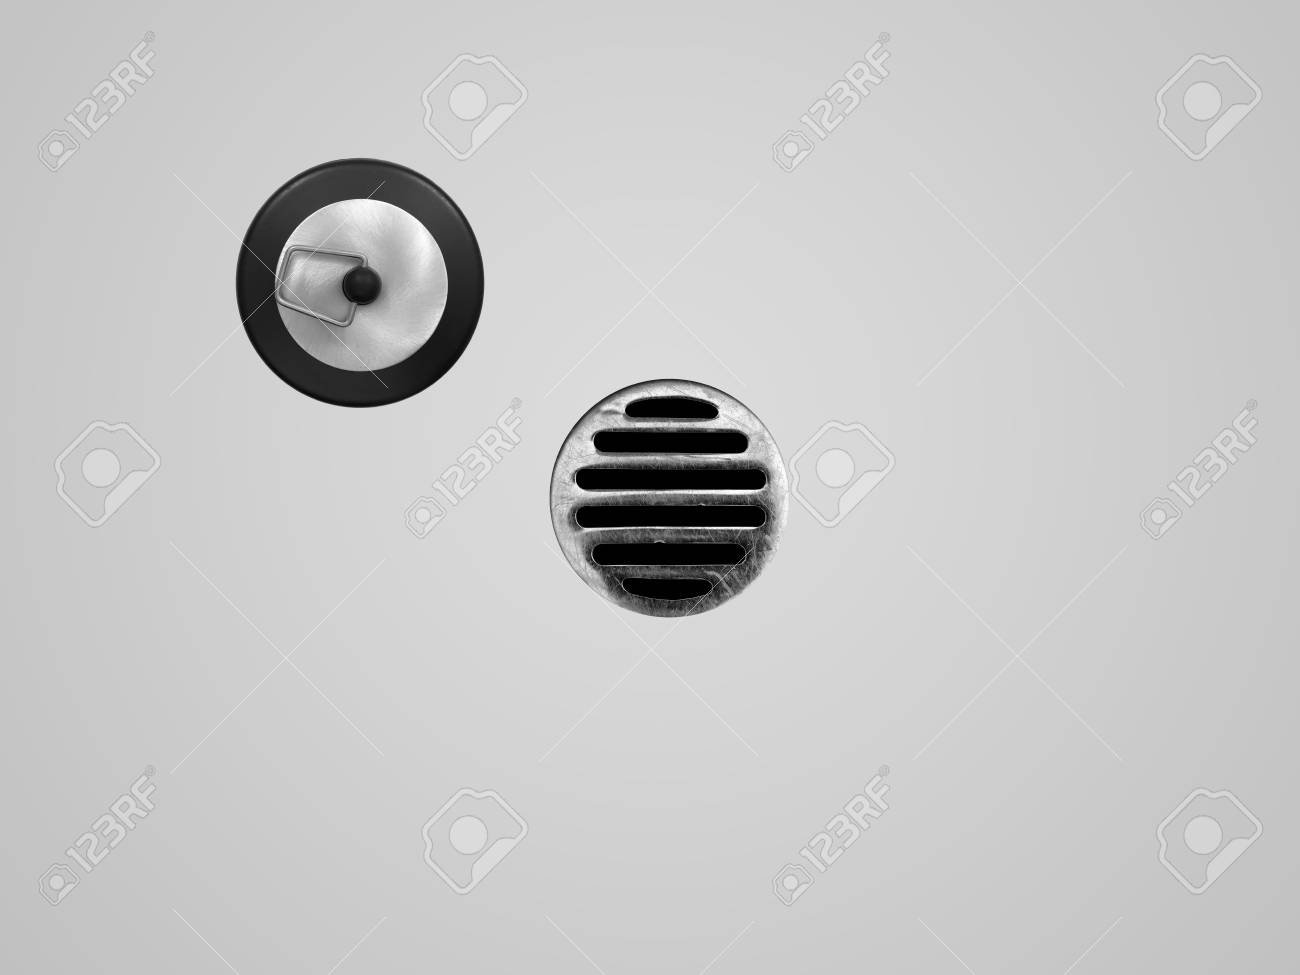 A drain hole isolate on a white background Stock Photo - 15117493